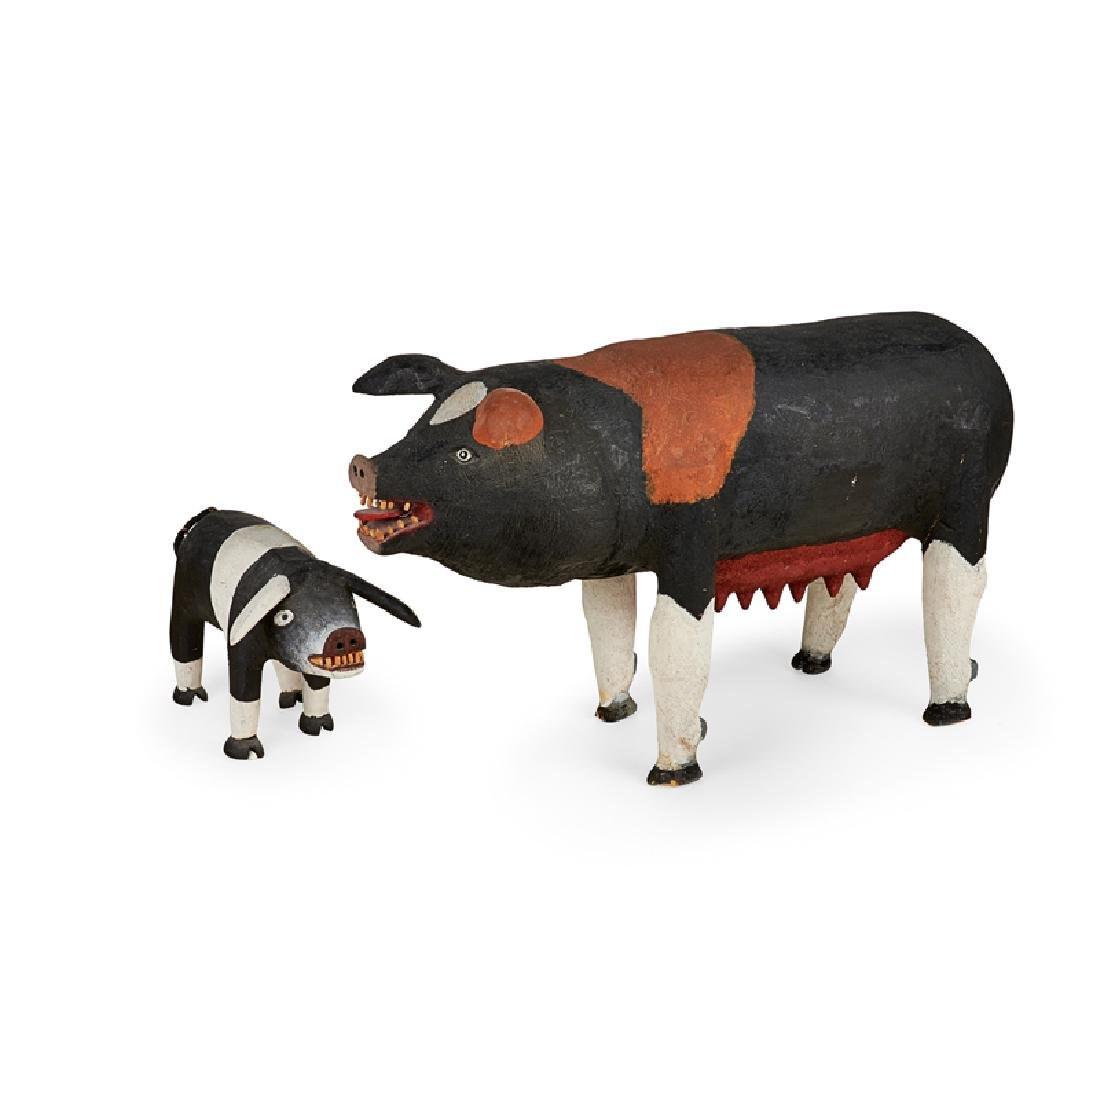 FELIPE ARCHULETA MOTHER AND BABY PIG